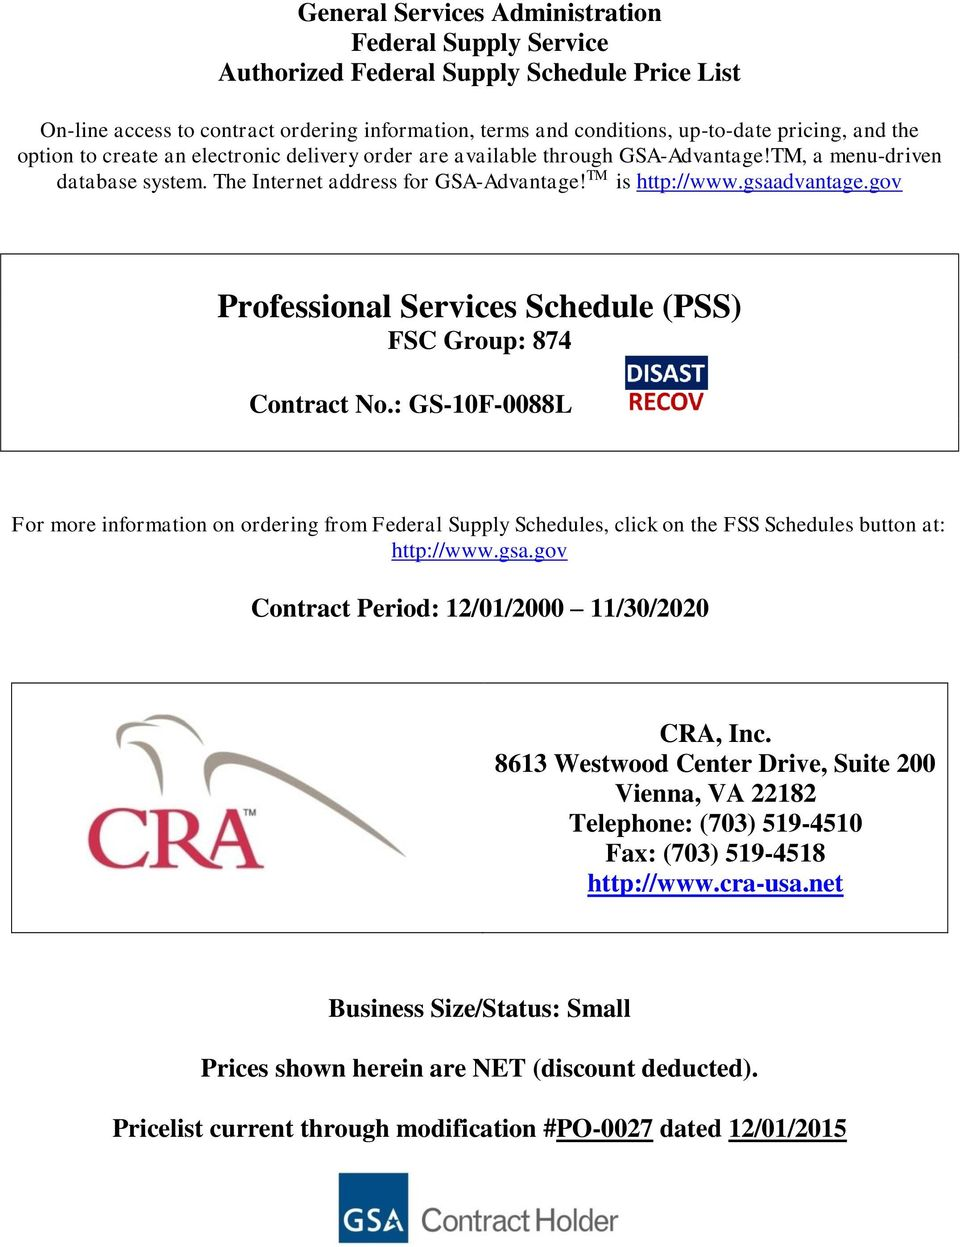 gov Professional Services Schedule (PSS) FSC Group: 874 Contract No.: GS-10F-0088L For more information on ordering from Federal Supply Schedules, click on the FSS Schedules button at: http://www.gsa.